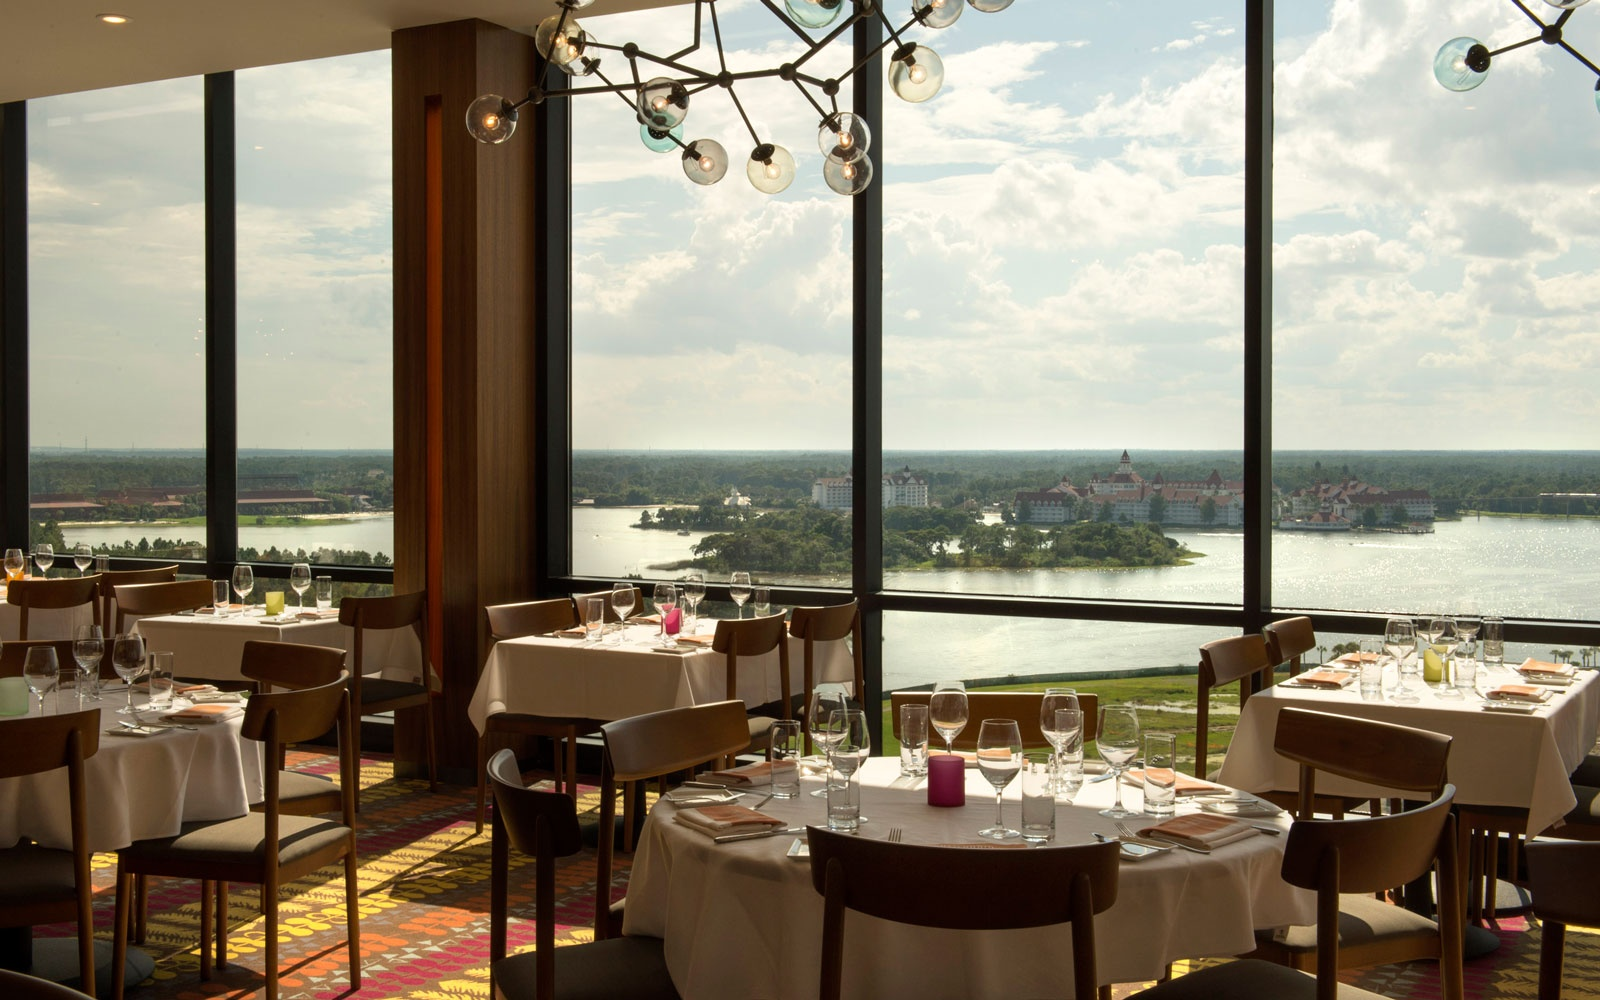 lake view from the California Grill, Contemporary Resort at Disney World, FL